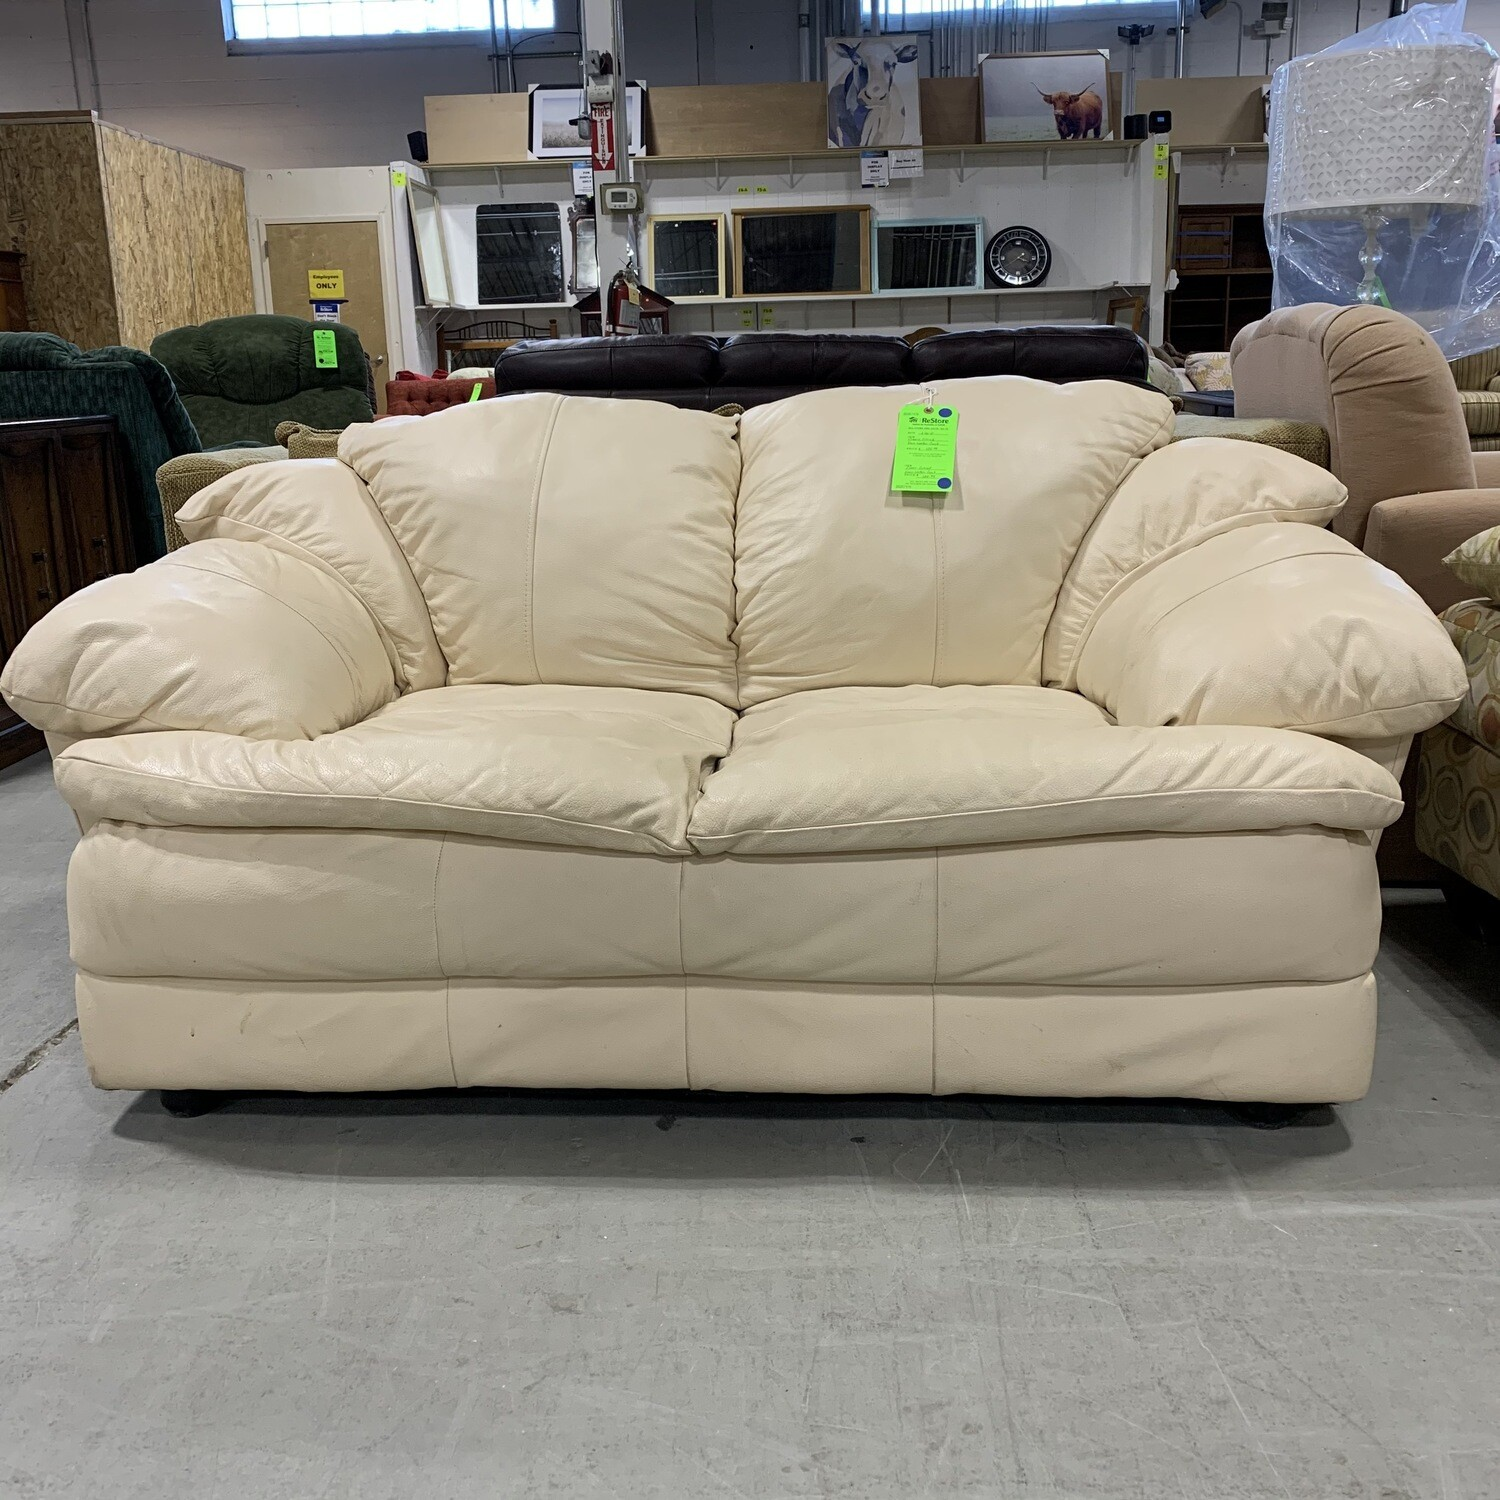 Cream Colored Faux Leather Couch